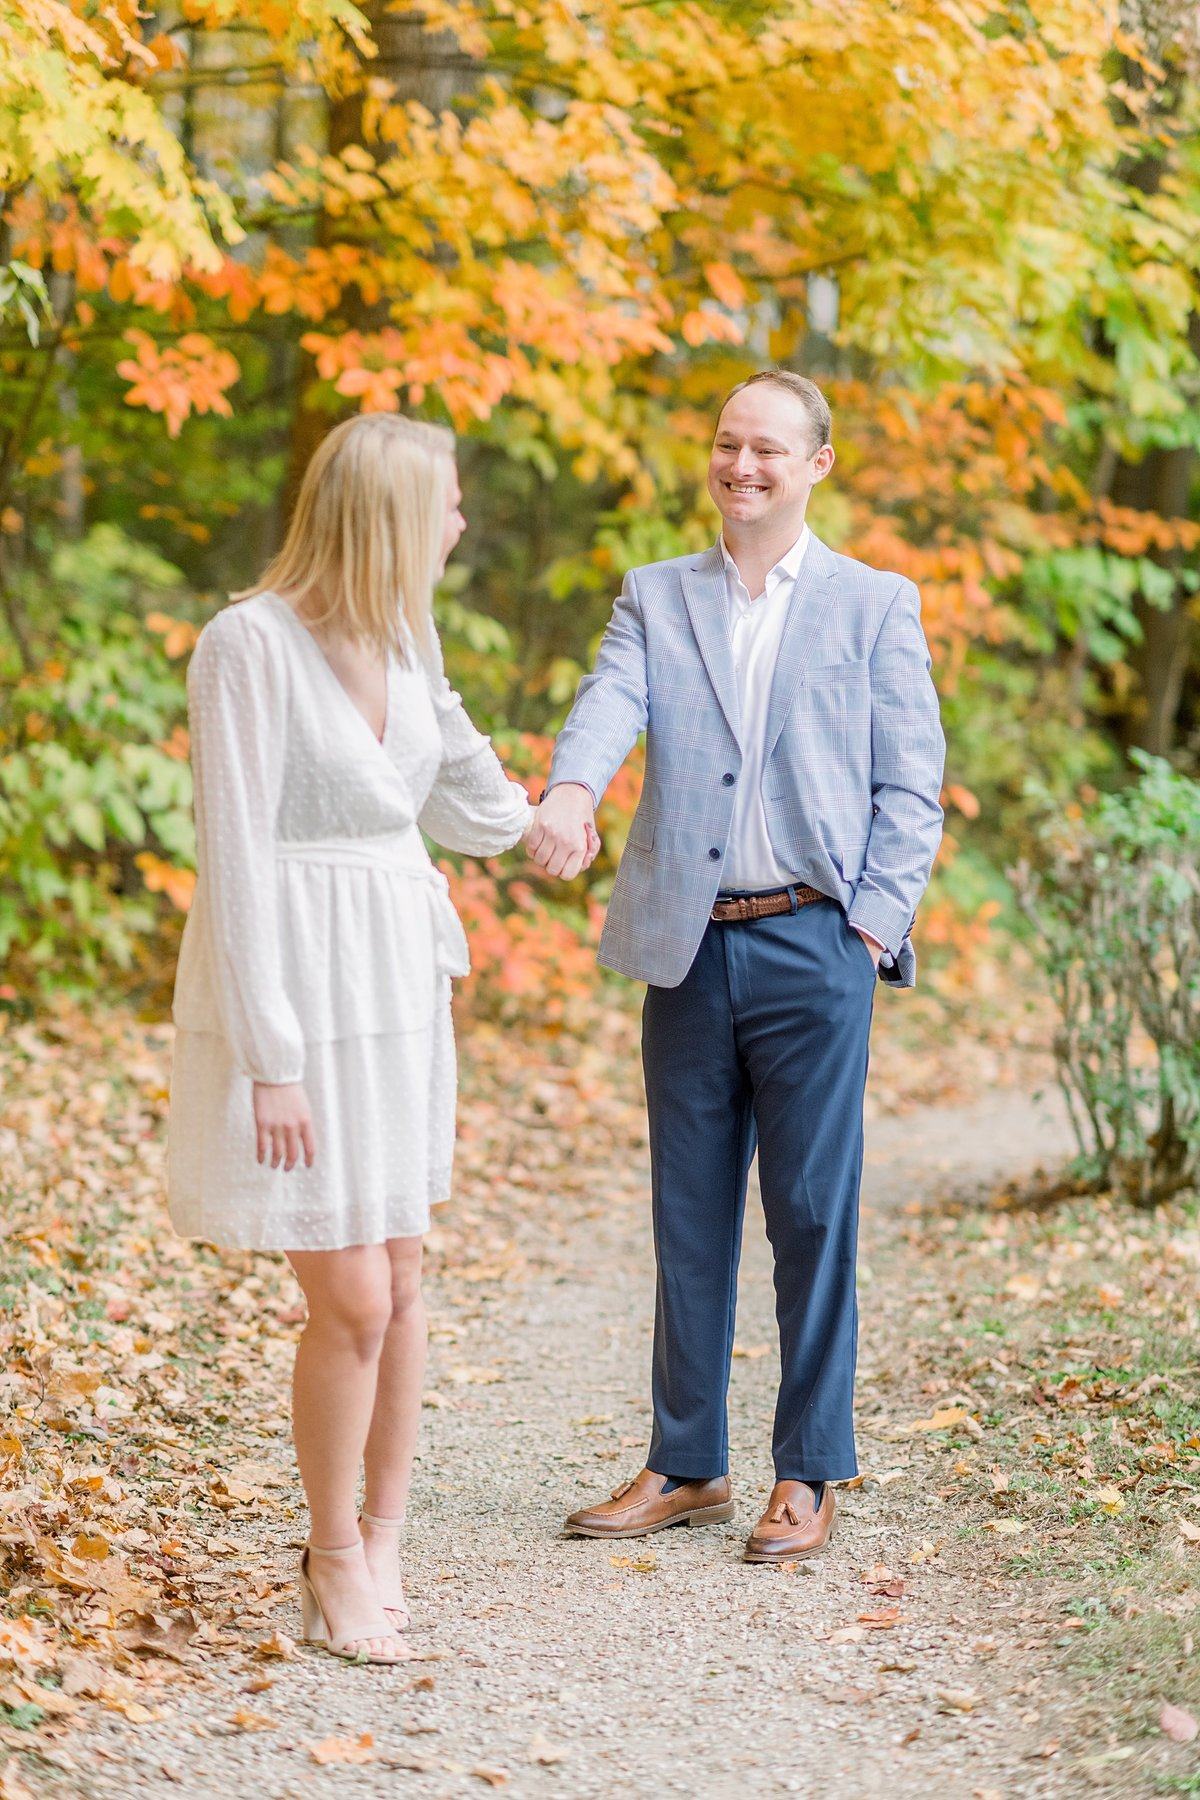 Holcomb Gardens Engagement Session Indianapolis, Indiana Wedding Photographer Alison Mae Photography_3201